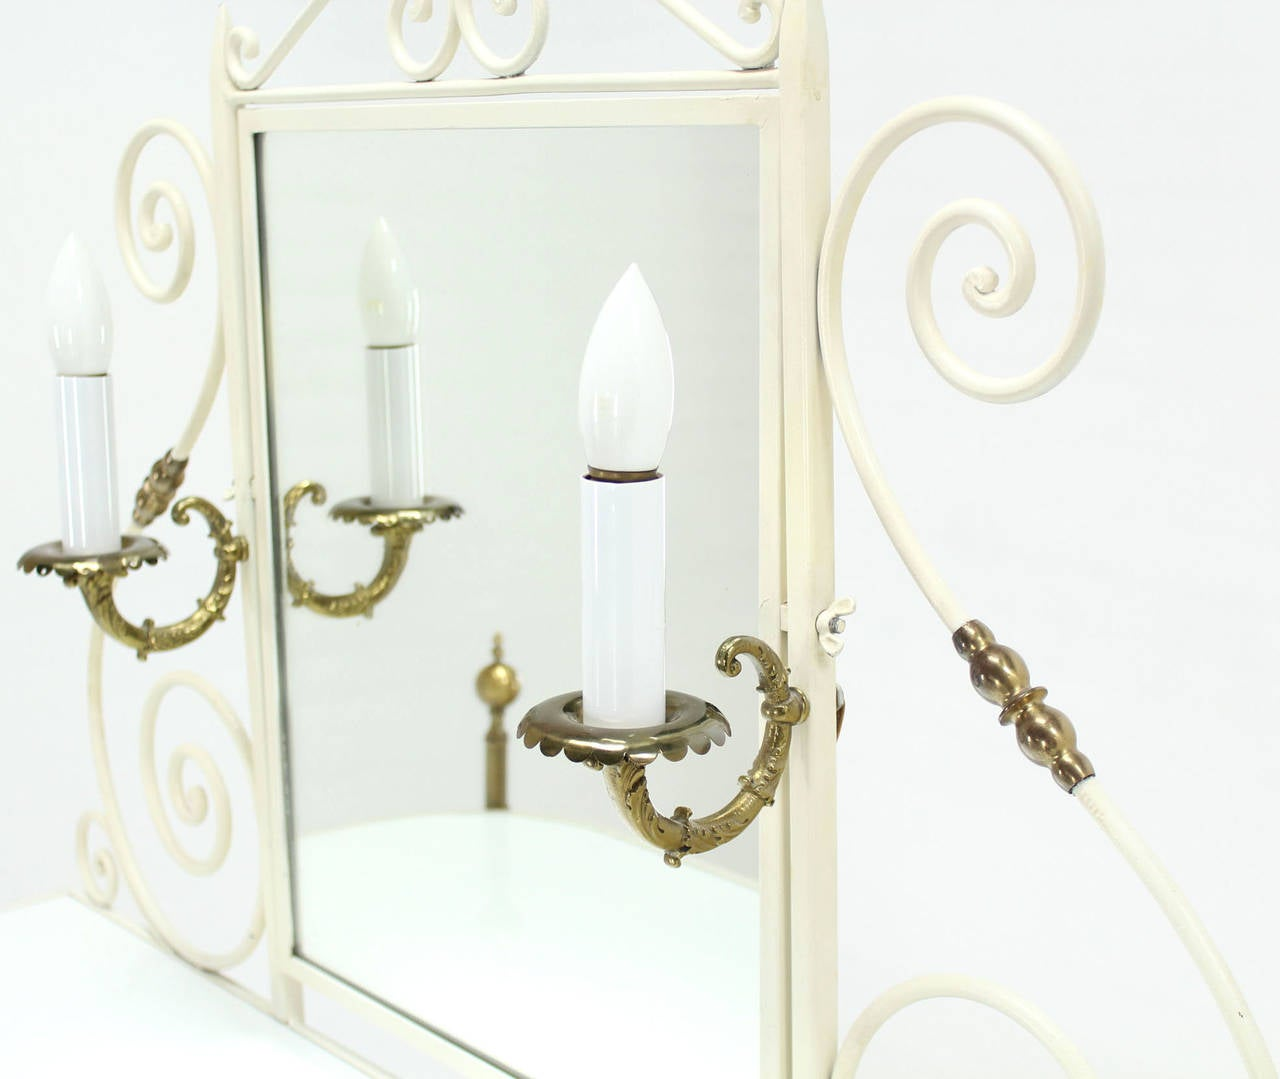 Decorative Vanity Dressing Table Milk Glass Top Metal Scrolls Brass Hardware For Sale 4